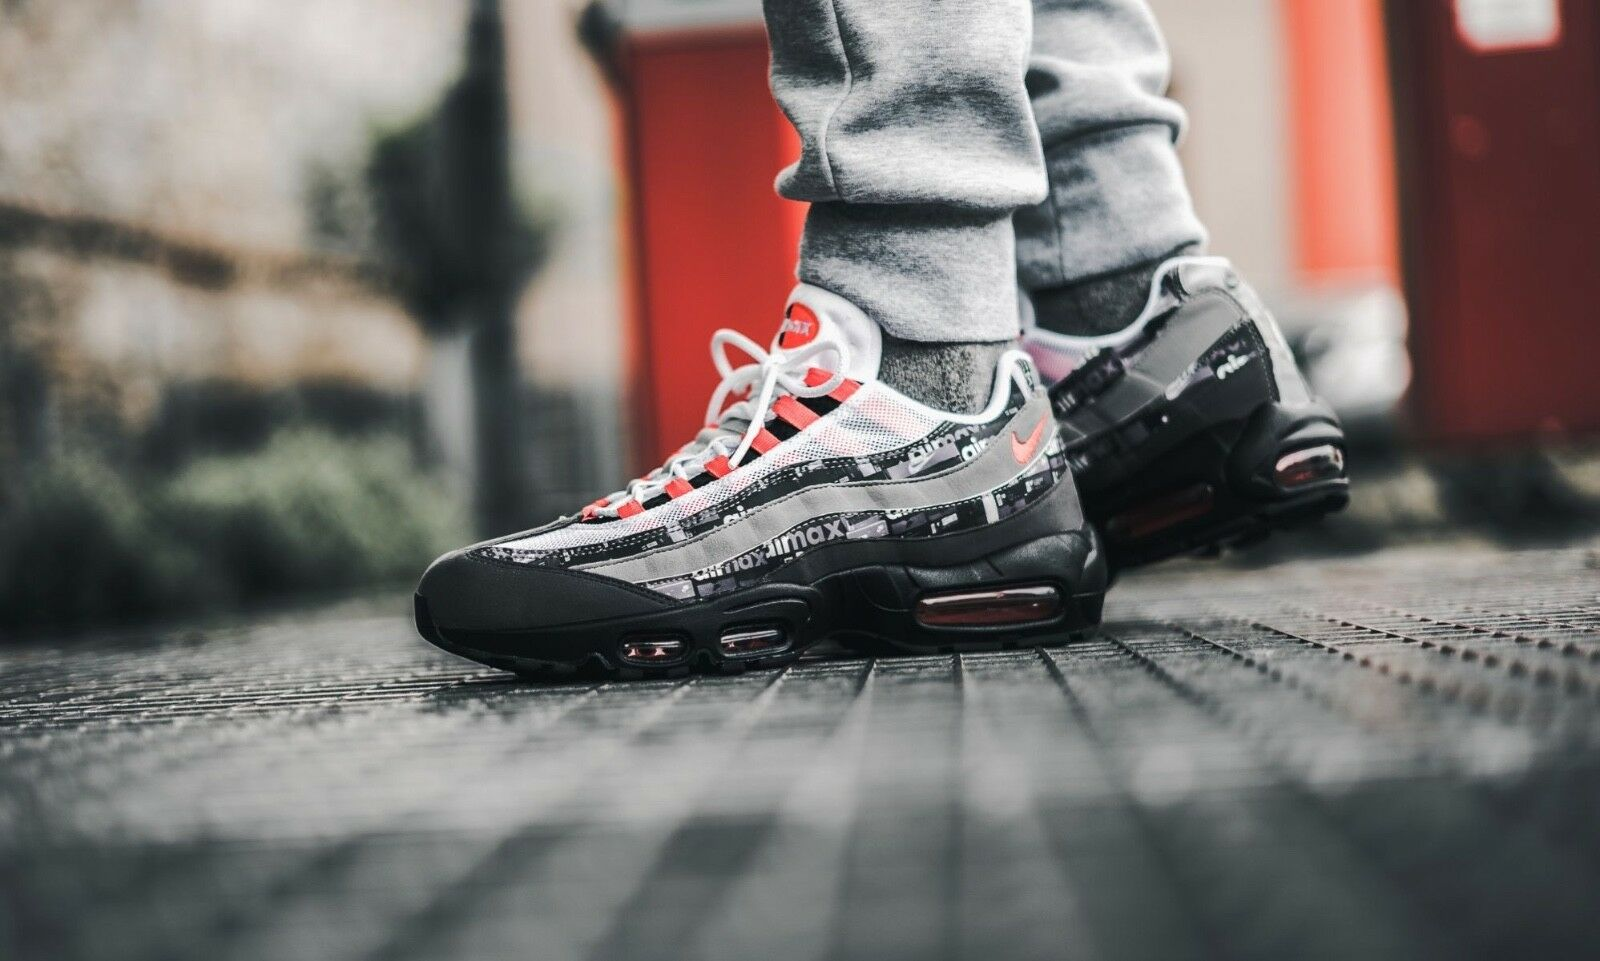 Atmos-X-Nike-Air-Max-95-Print-WE-LOVE-NIKE-Black-Sneakers-AQ0925-002 SIZE 15 DS  Cheap and fashionable